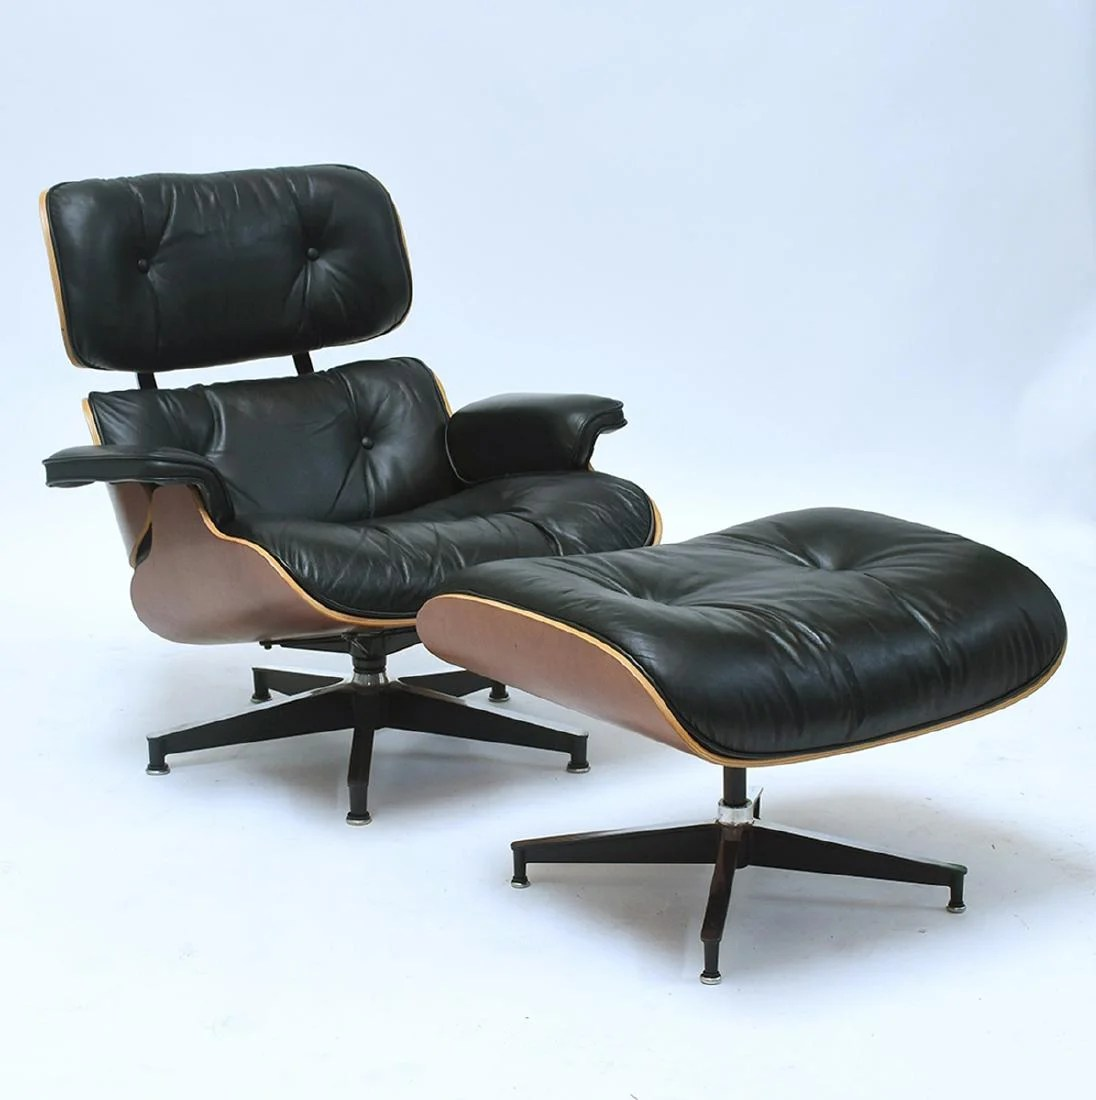 Eanes Chair Herman Miller Black Leather Eames Chair And Ottoman Mar 24 2019 Srq Auctions In Fl On Liveauctioneers